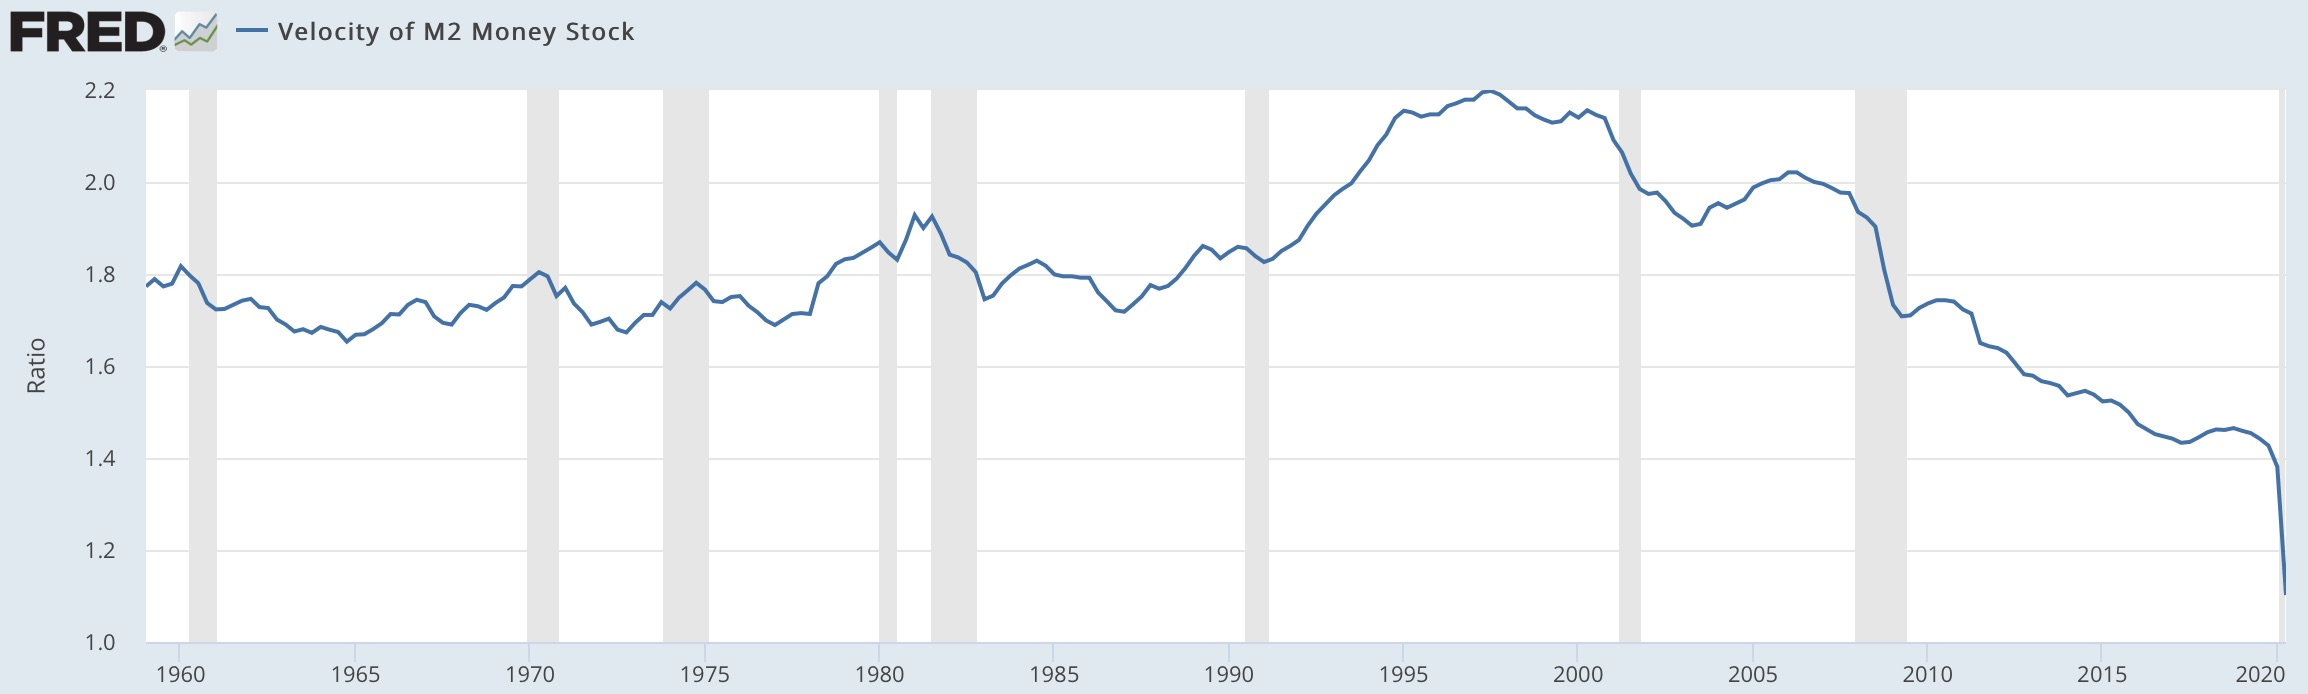 Window_and_Velocity_of_M2_Money_Stock__M2V____FRED___St__Louis_Fed.jpg